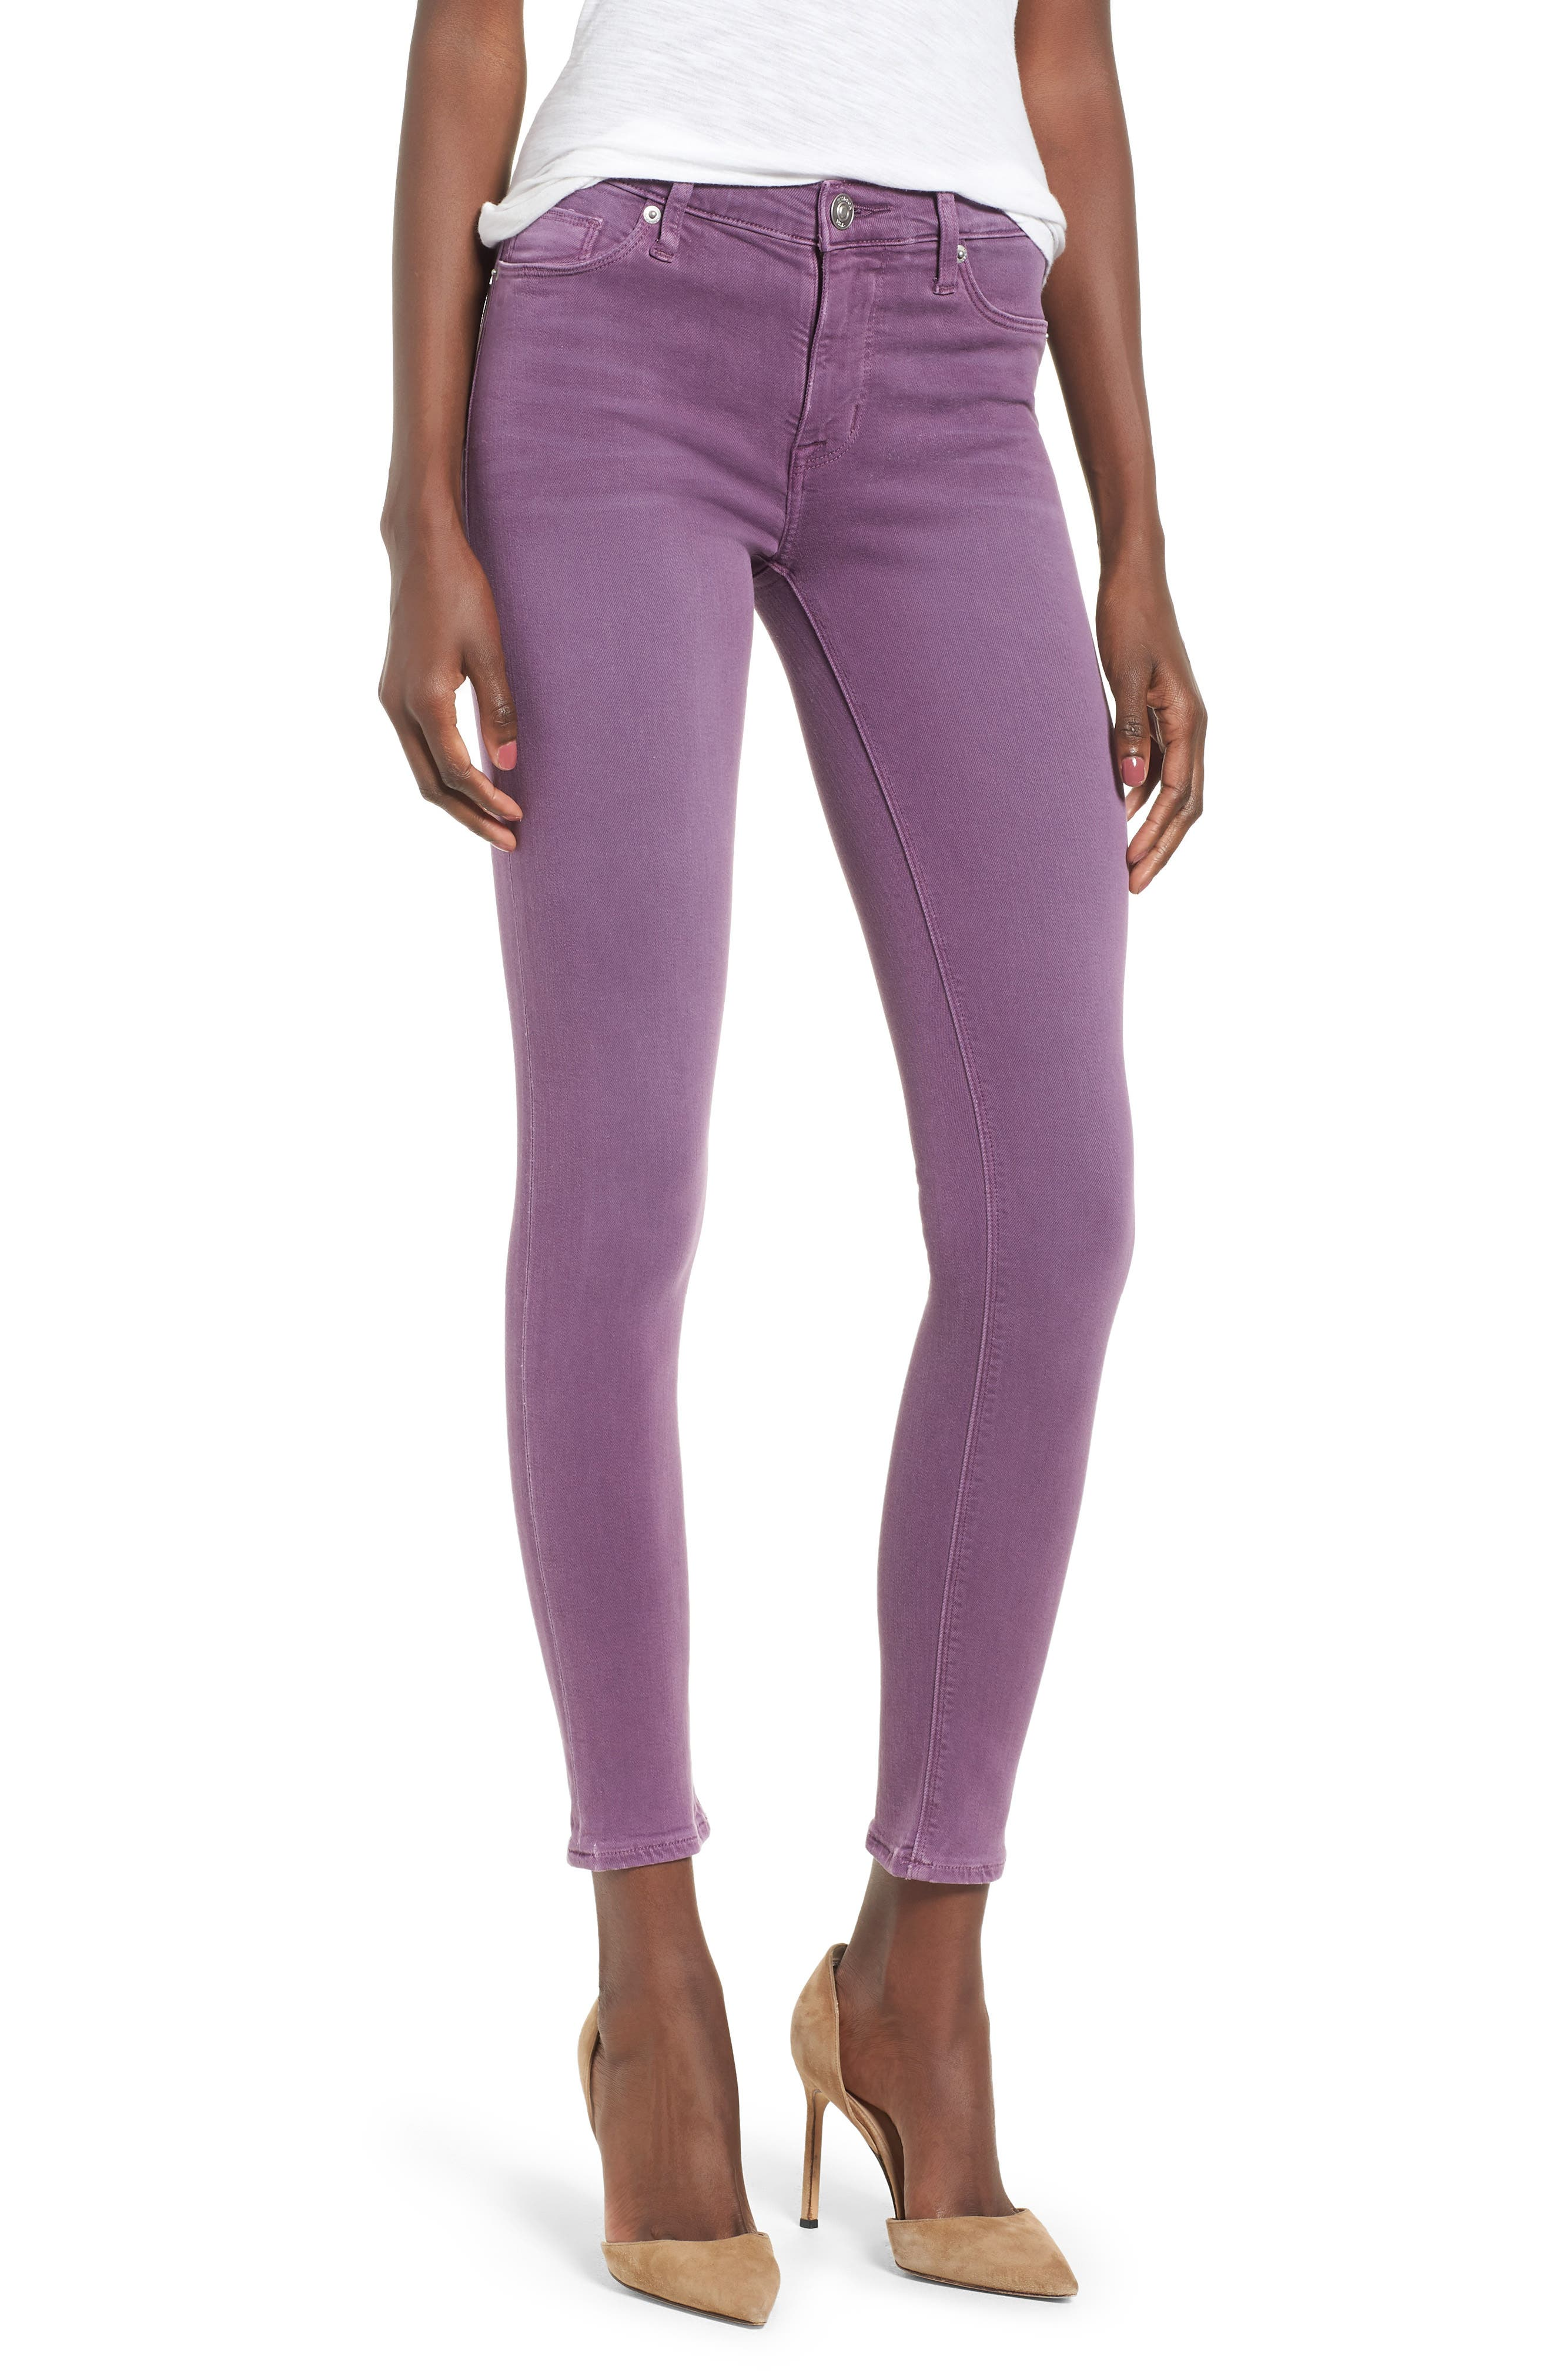 'Nico' Ankle Skinny Jeans,                         Main,                         color, Dusted Orchid